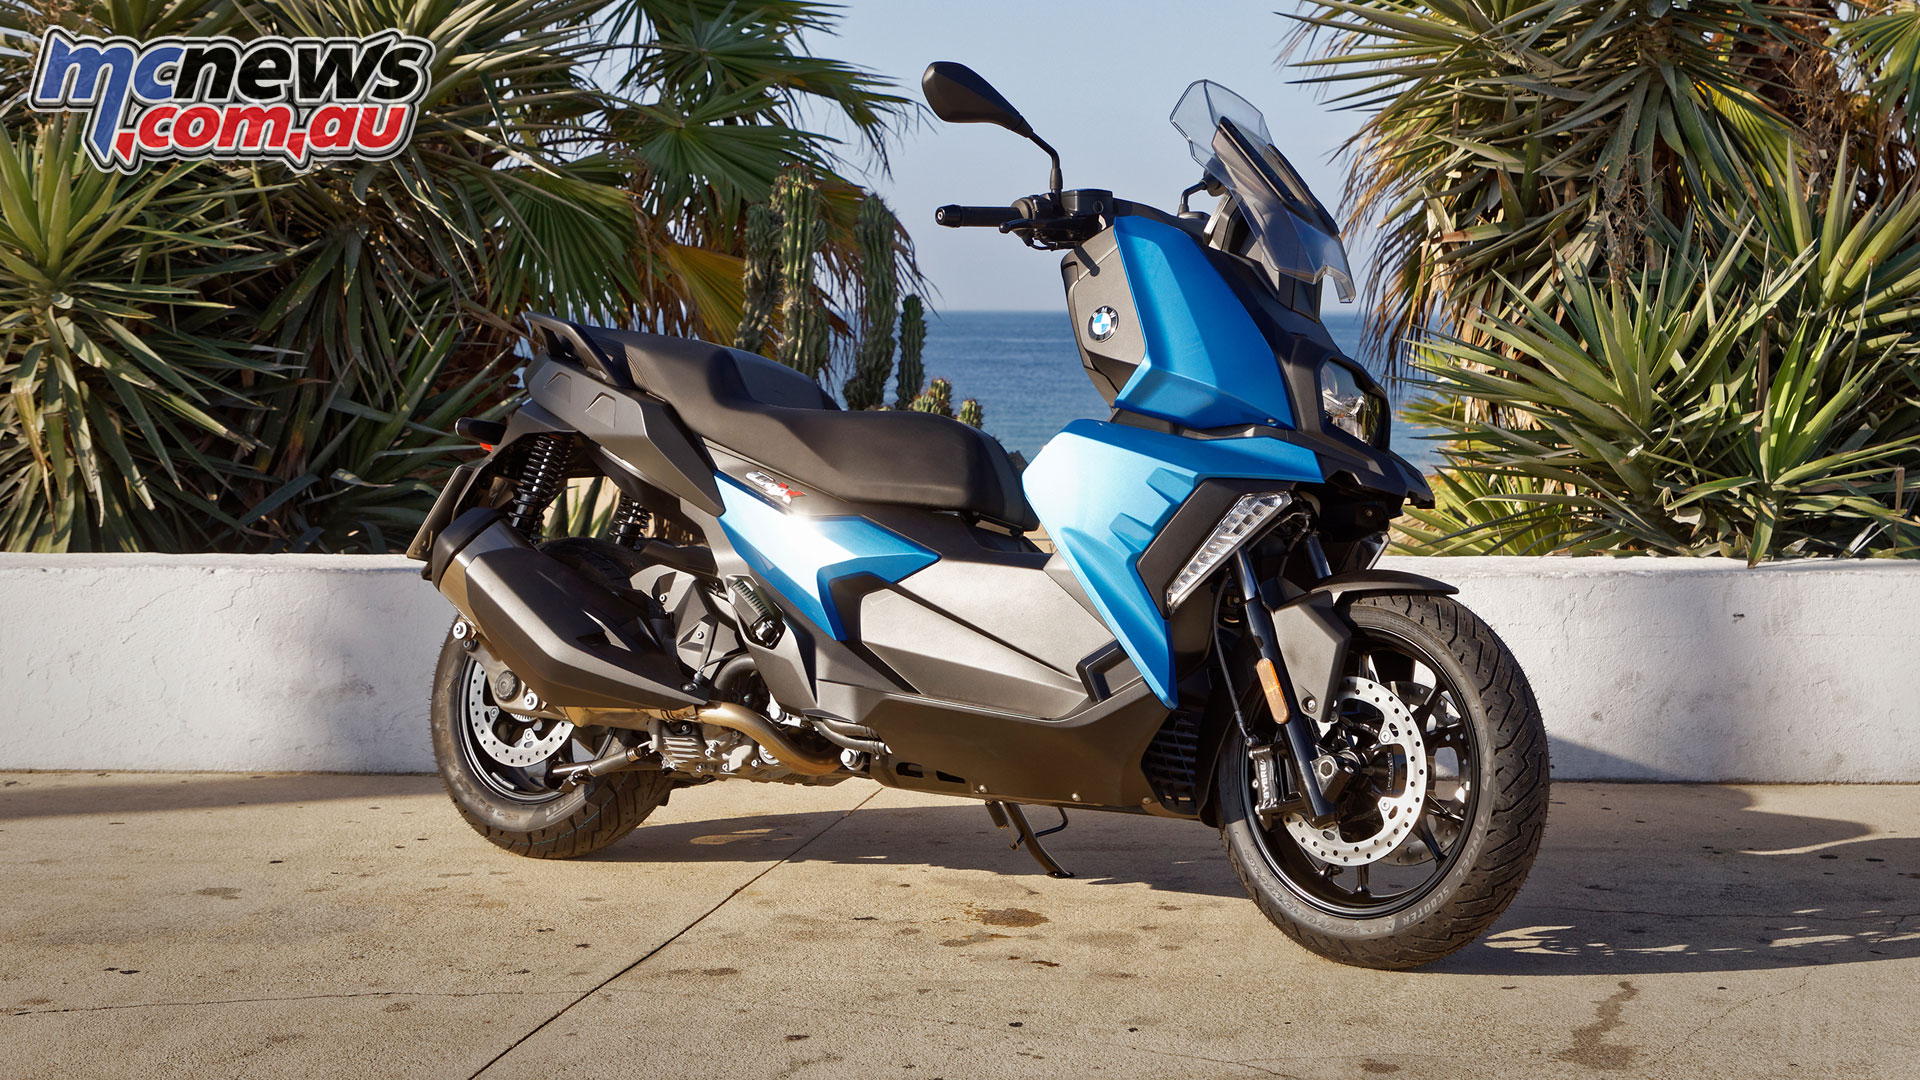 motorcycle dating australia How to join, what they do, where they meet, triumph dating, regalia, and much more.